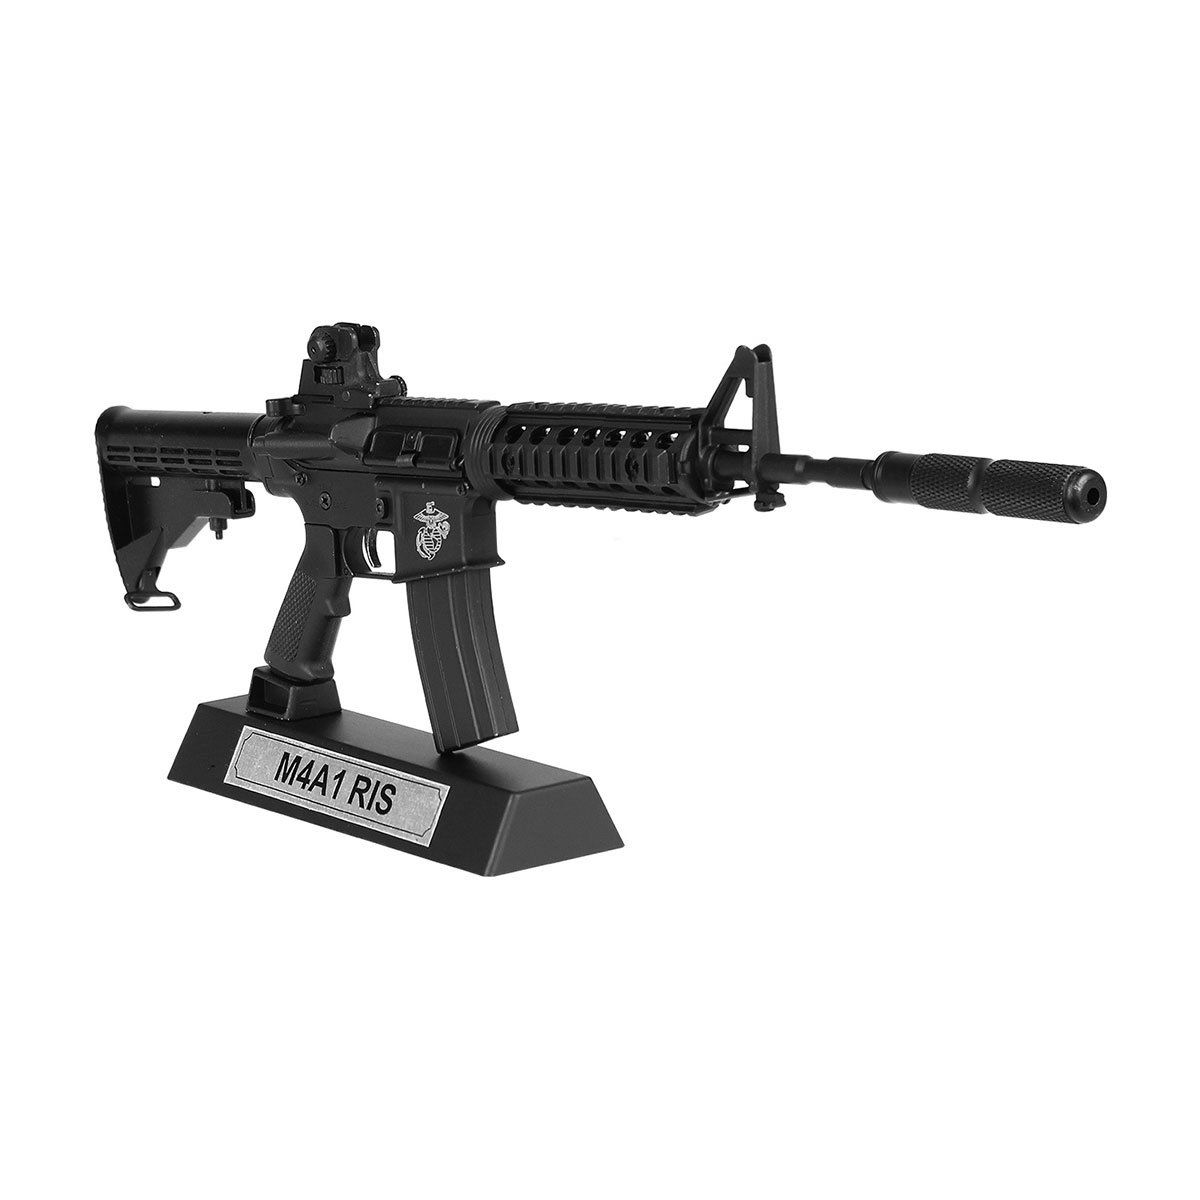 Miniatura Rifle M4A1 RIS Black em Metal